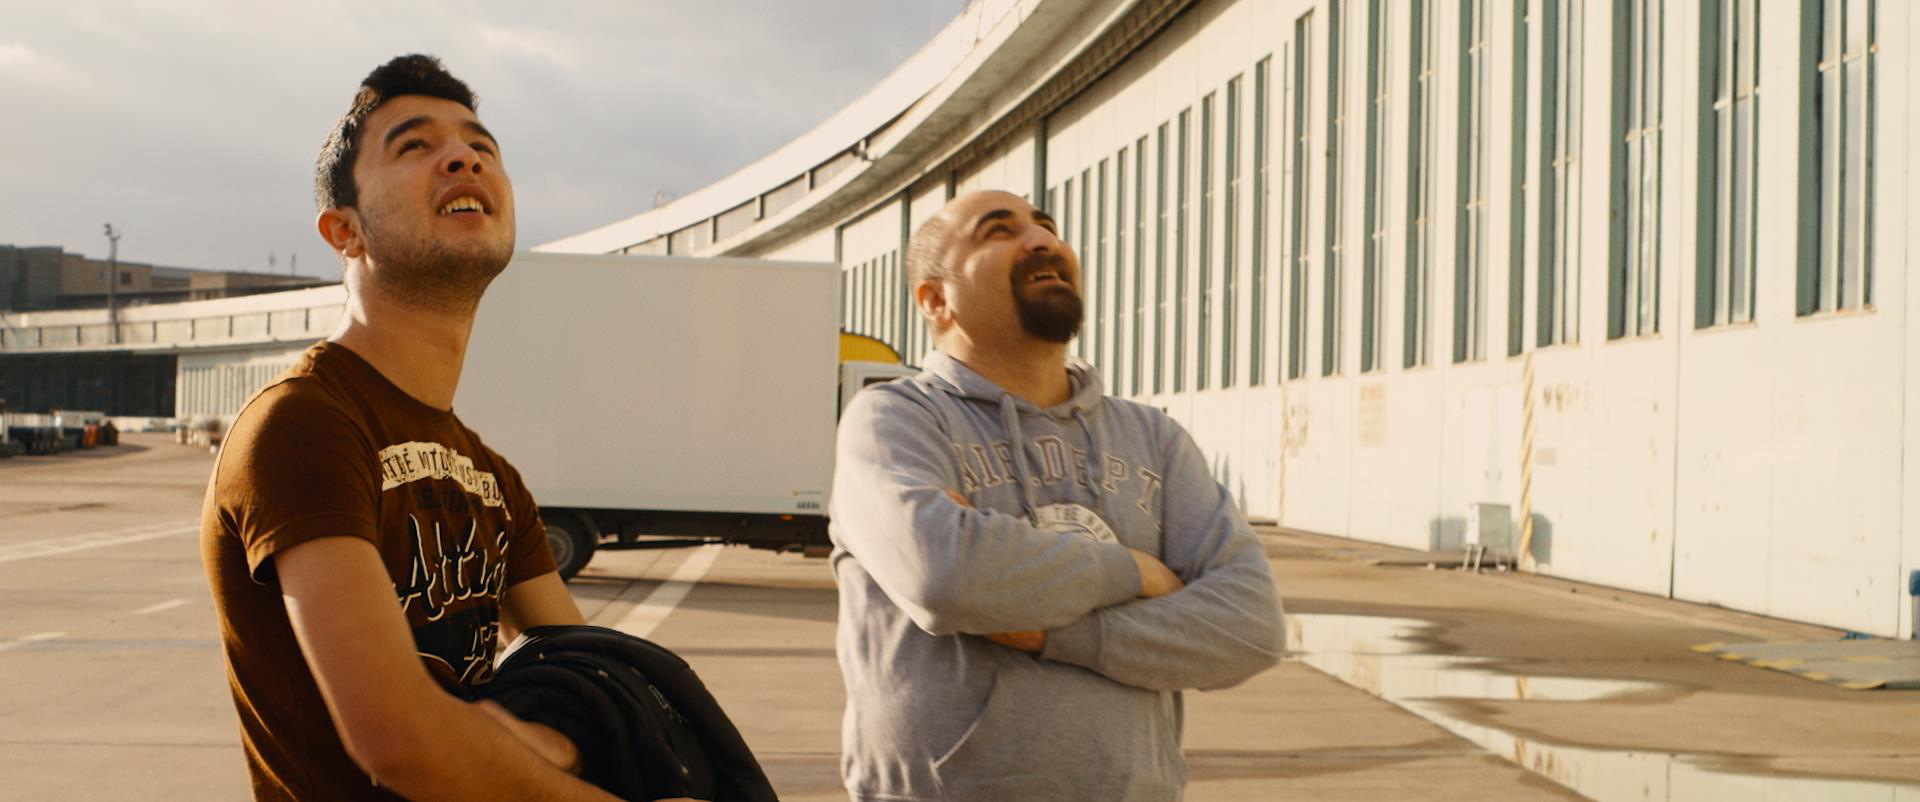 Figure 4: Ibrahim and Qutaiba feel a sense of home at Tempelhof airfield in Karim Aïnouz' Central Airport THF.